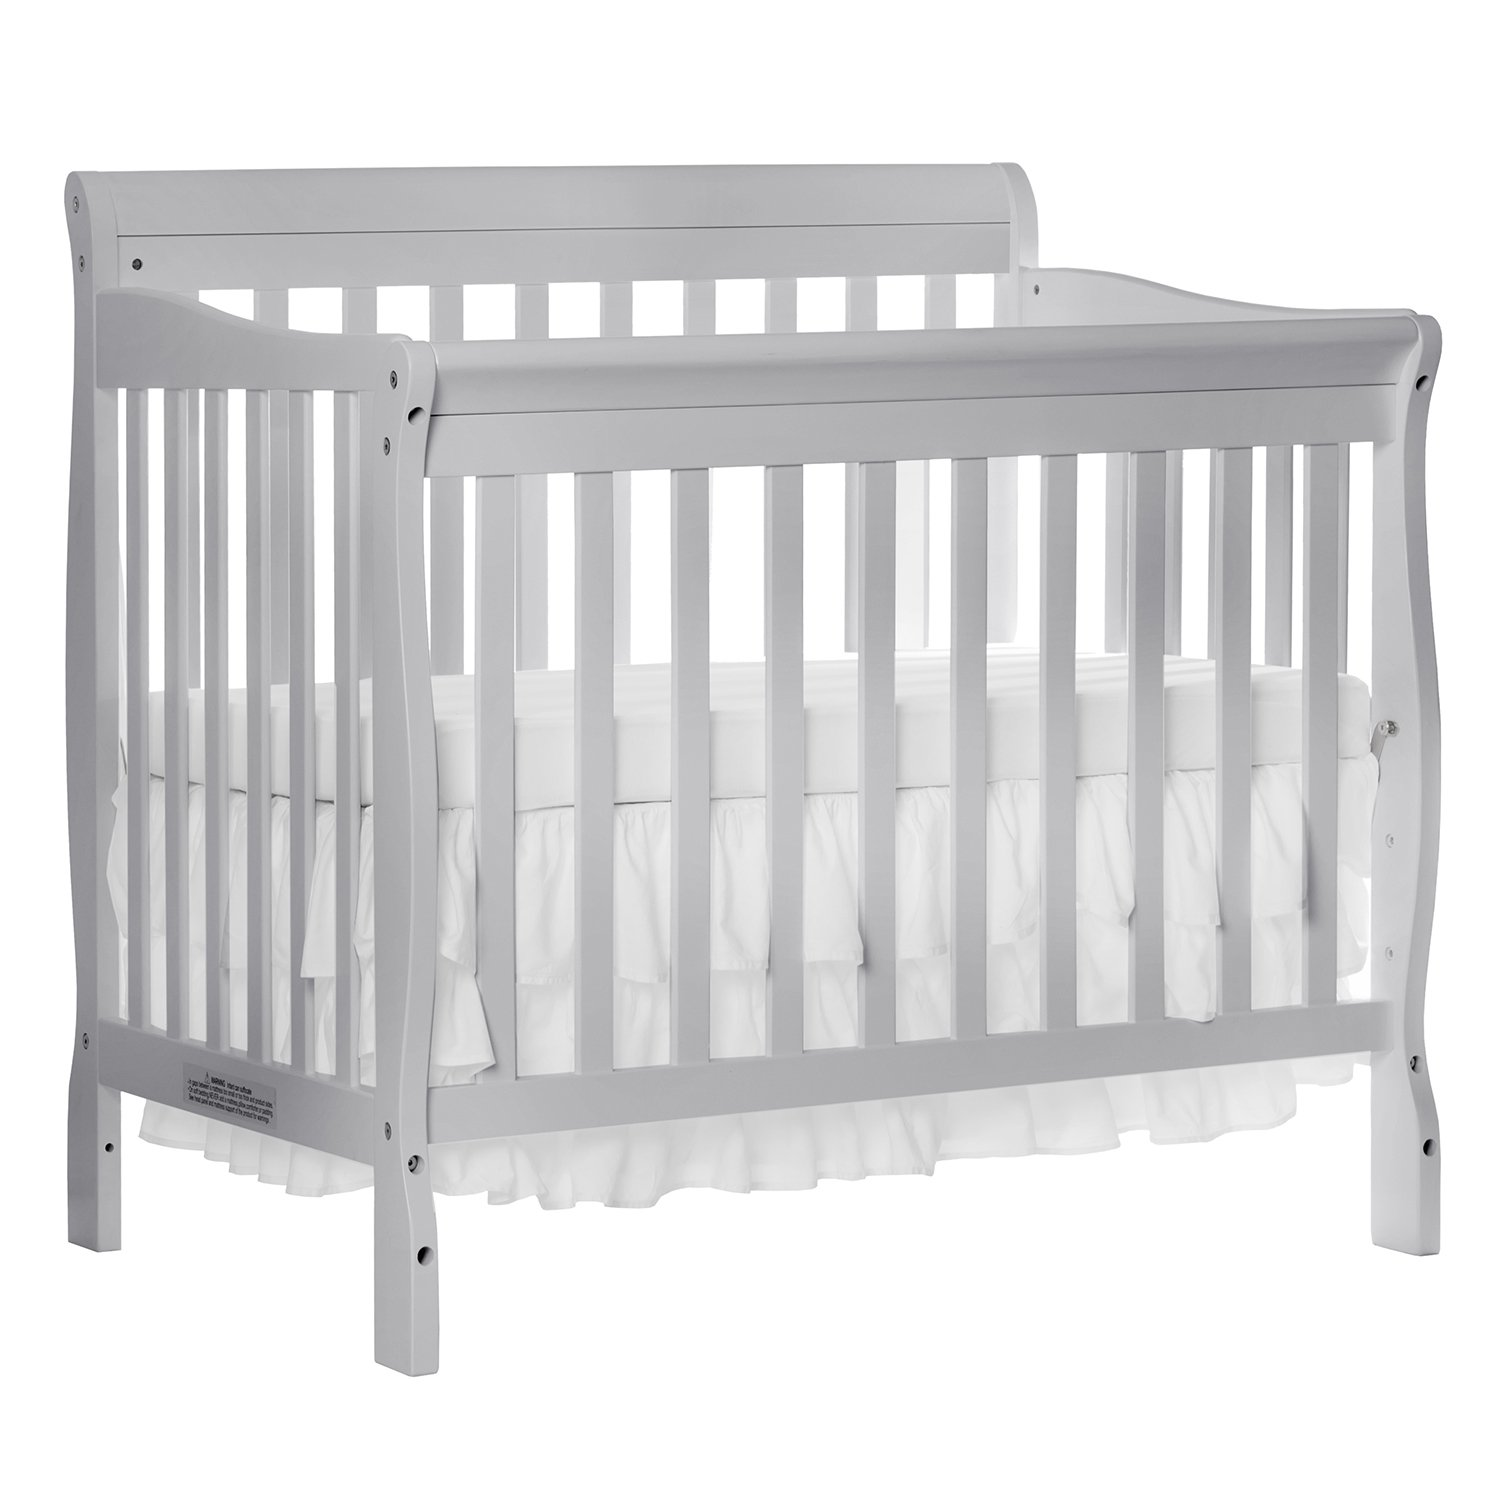 Amazon.com : Dream On Me Aden Convertible 4 In 1 Mini Crib, Grey : Baby